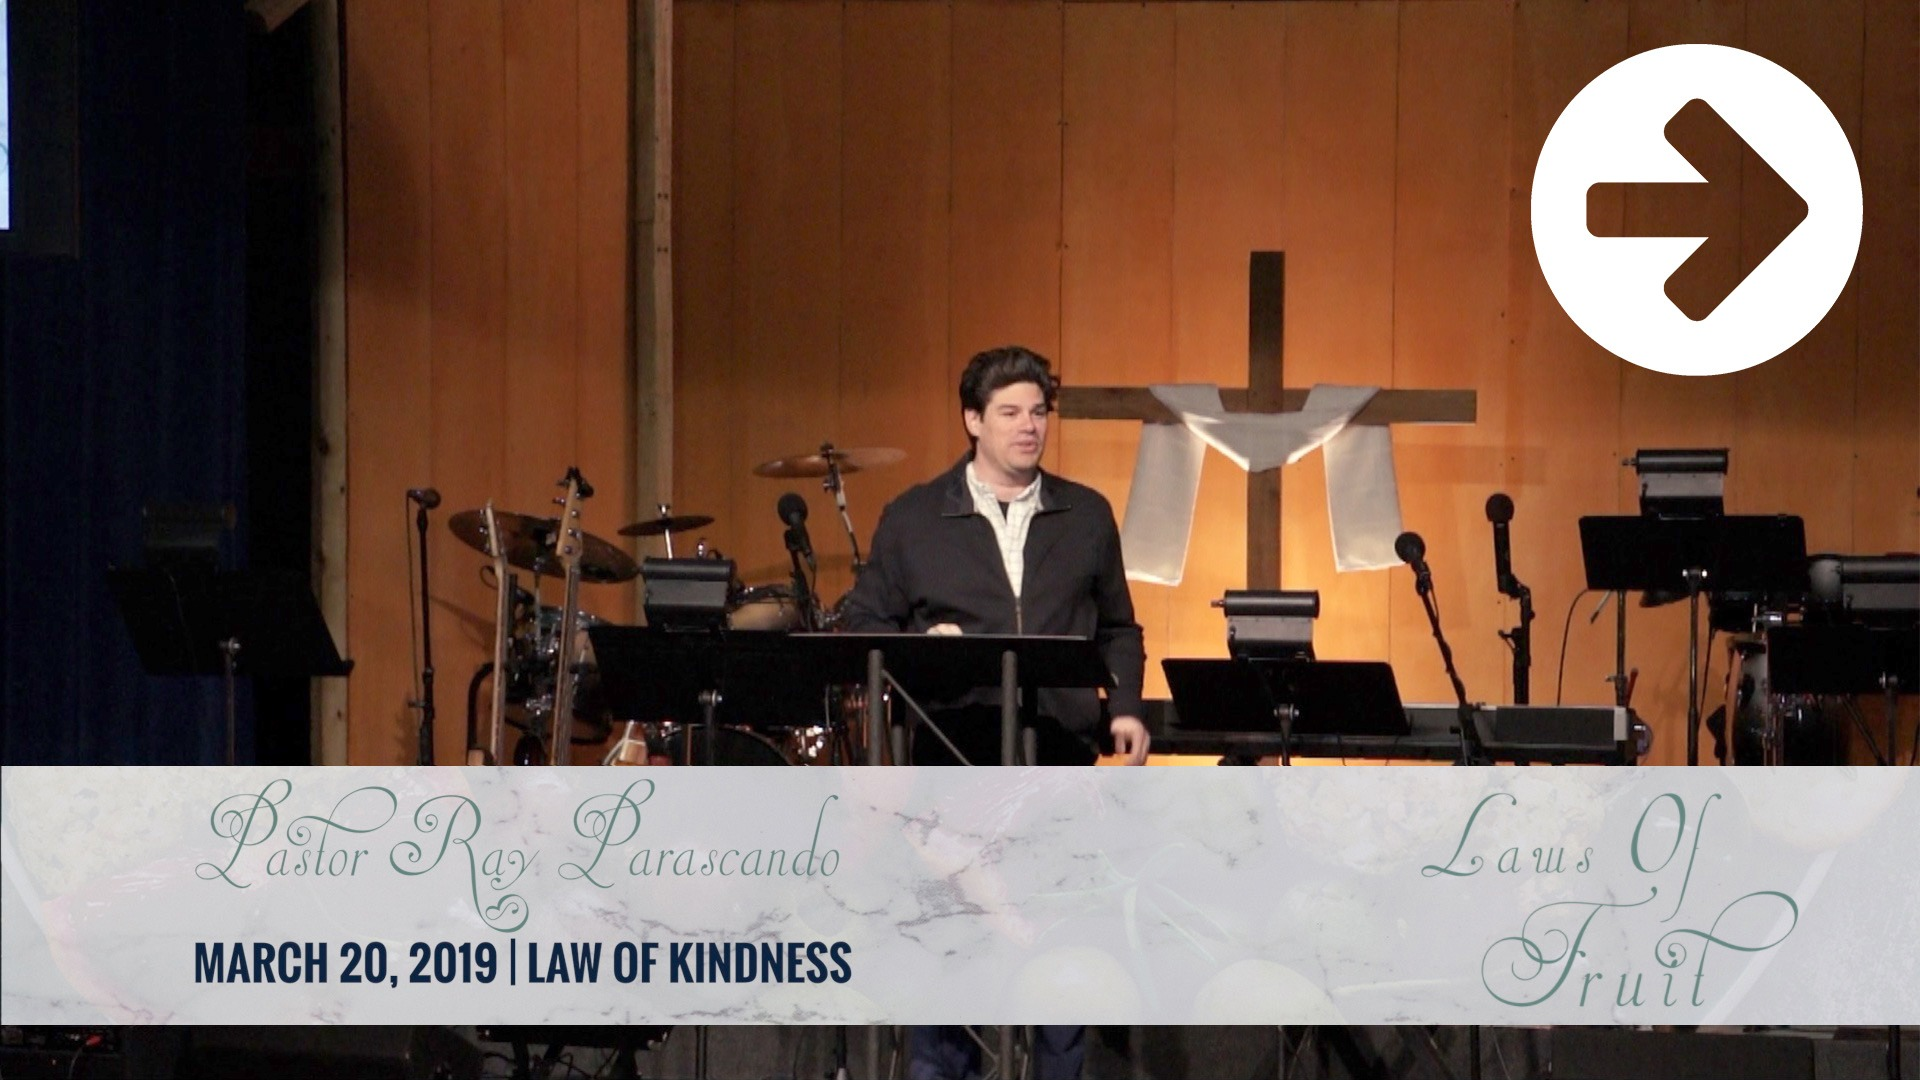 Law Of Kindness Image